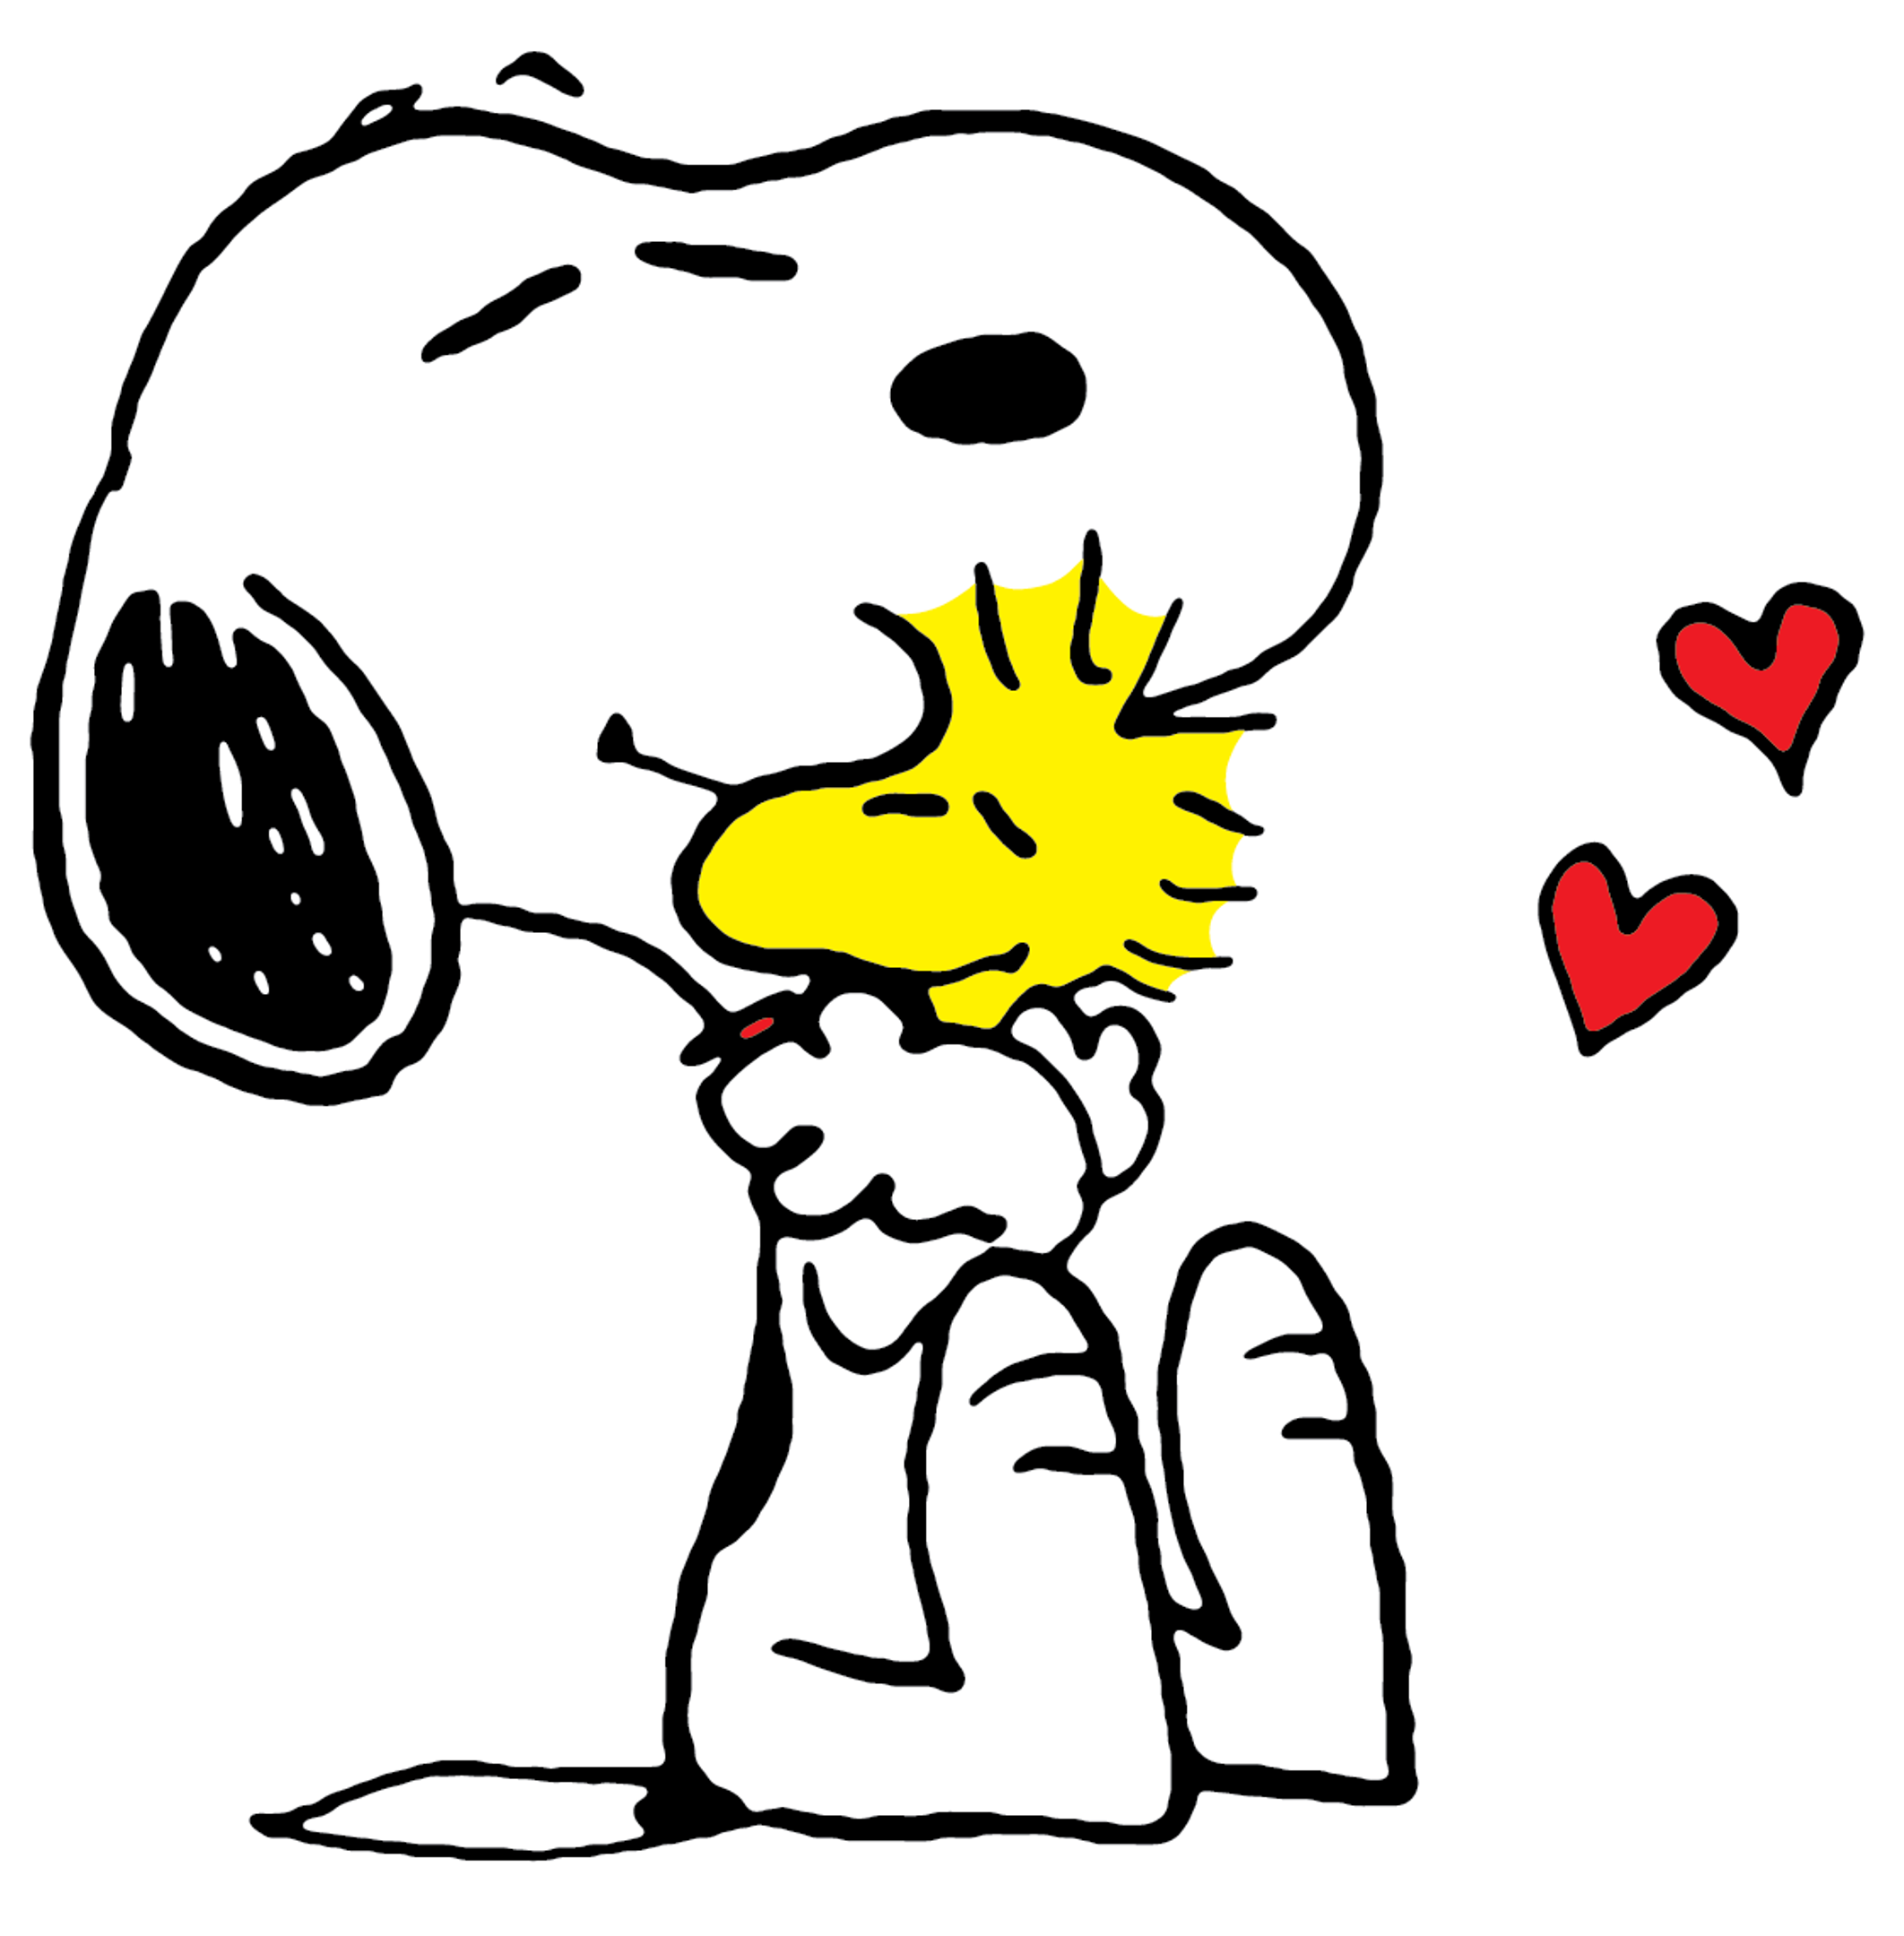 snoopy valentine wallpaper download